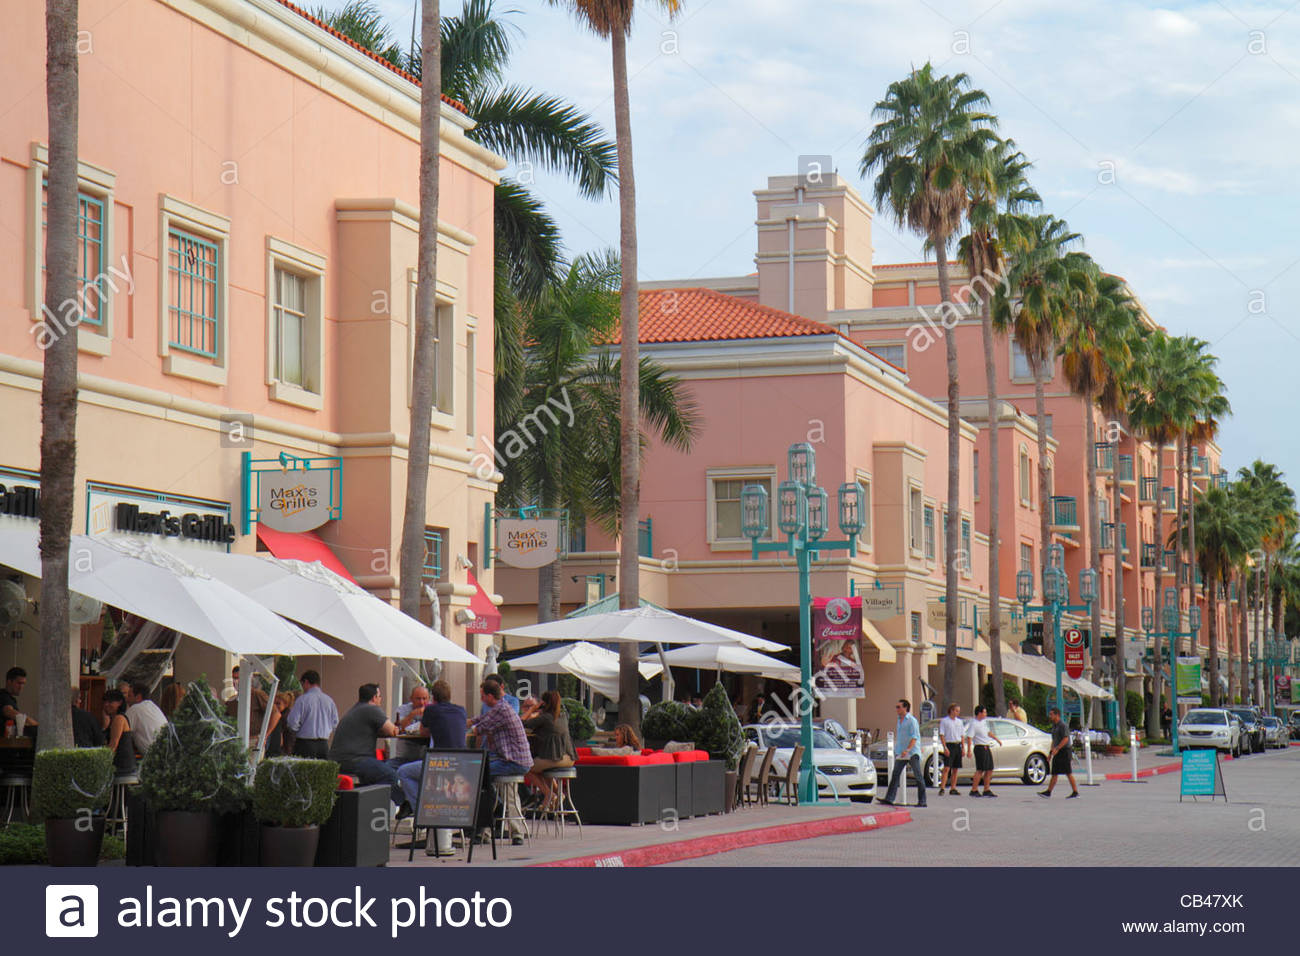 Boca Raton Shopping >> Boca Raton Florida Mizner Park Plaza Real Shopping Dining Palm Trees